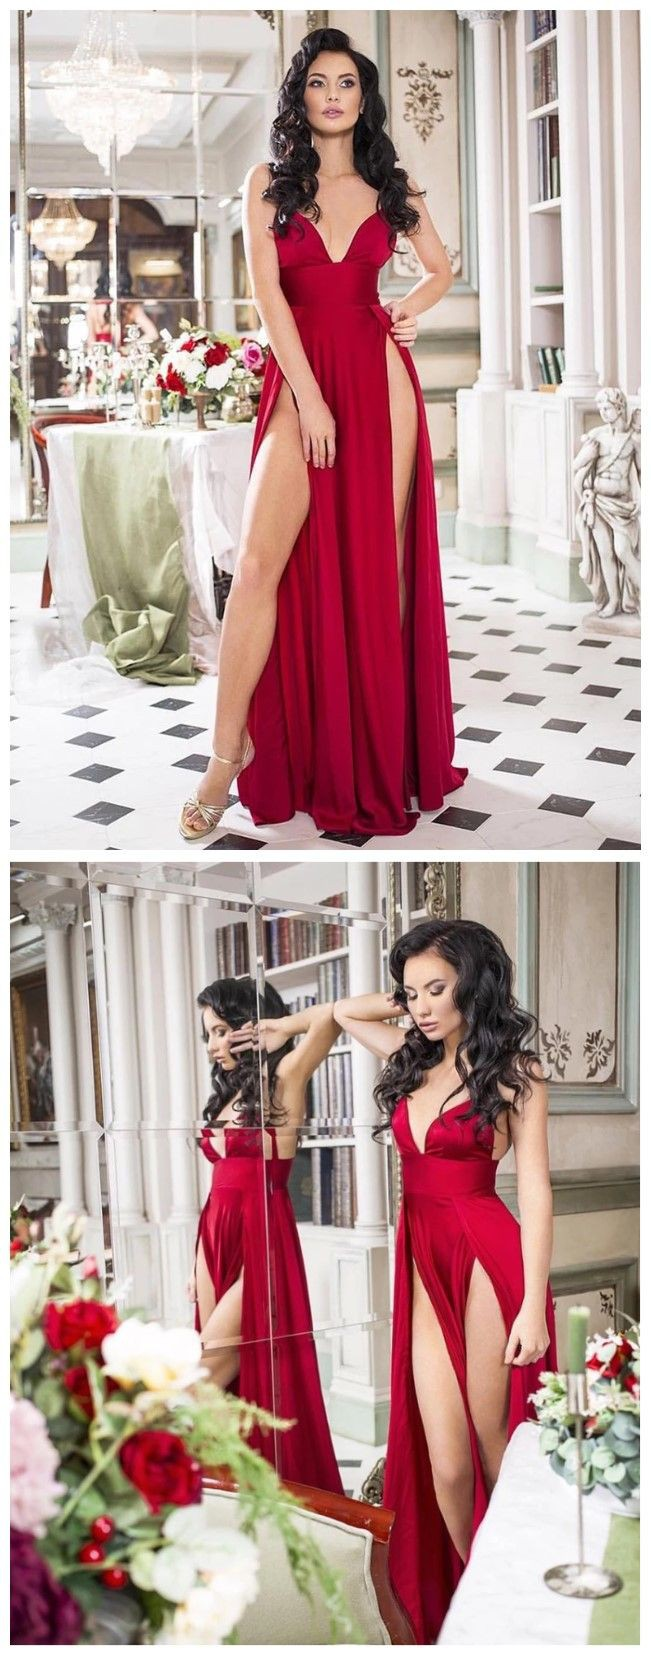 Pink and red fashion collection with cocktail dress, evening gown, gown, formal wear